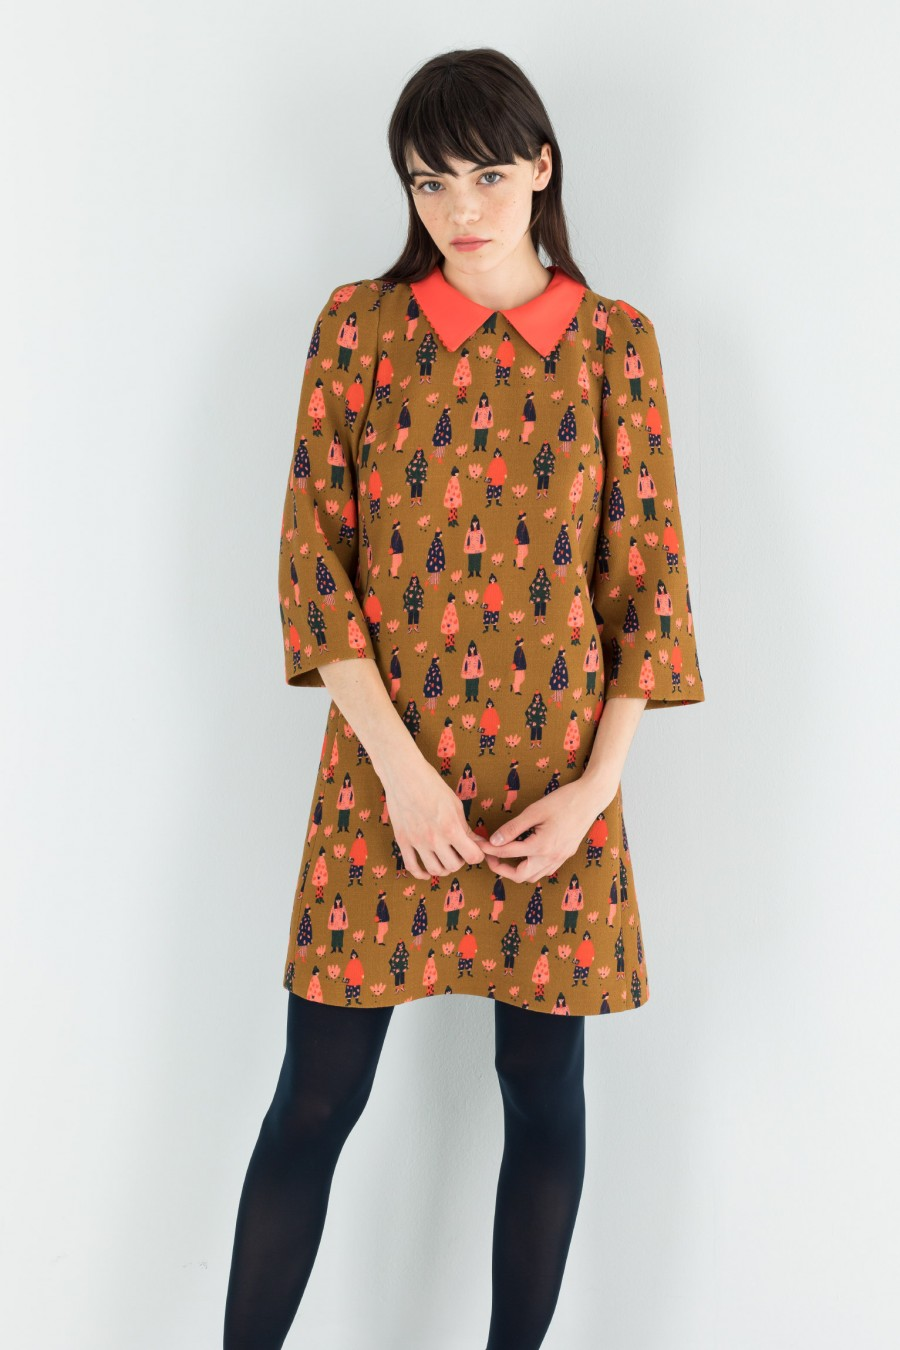 60s dress with pockets